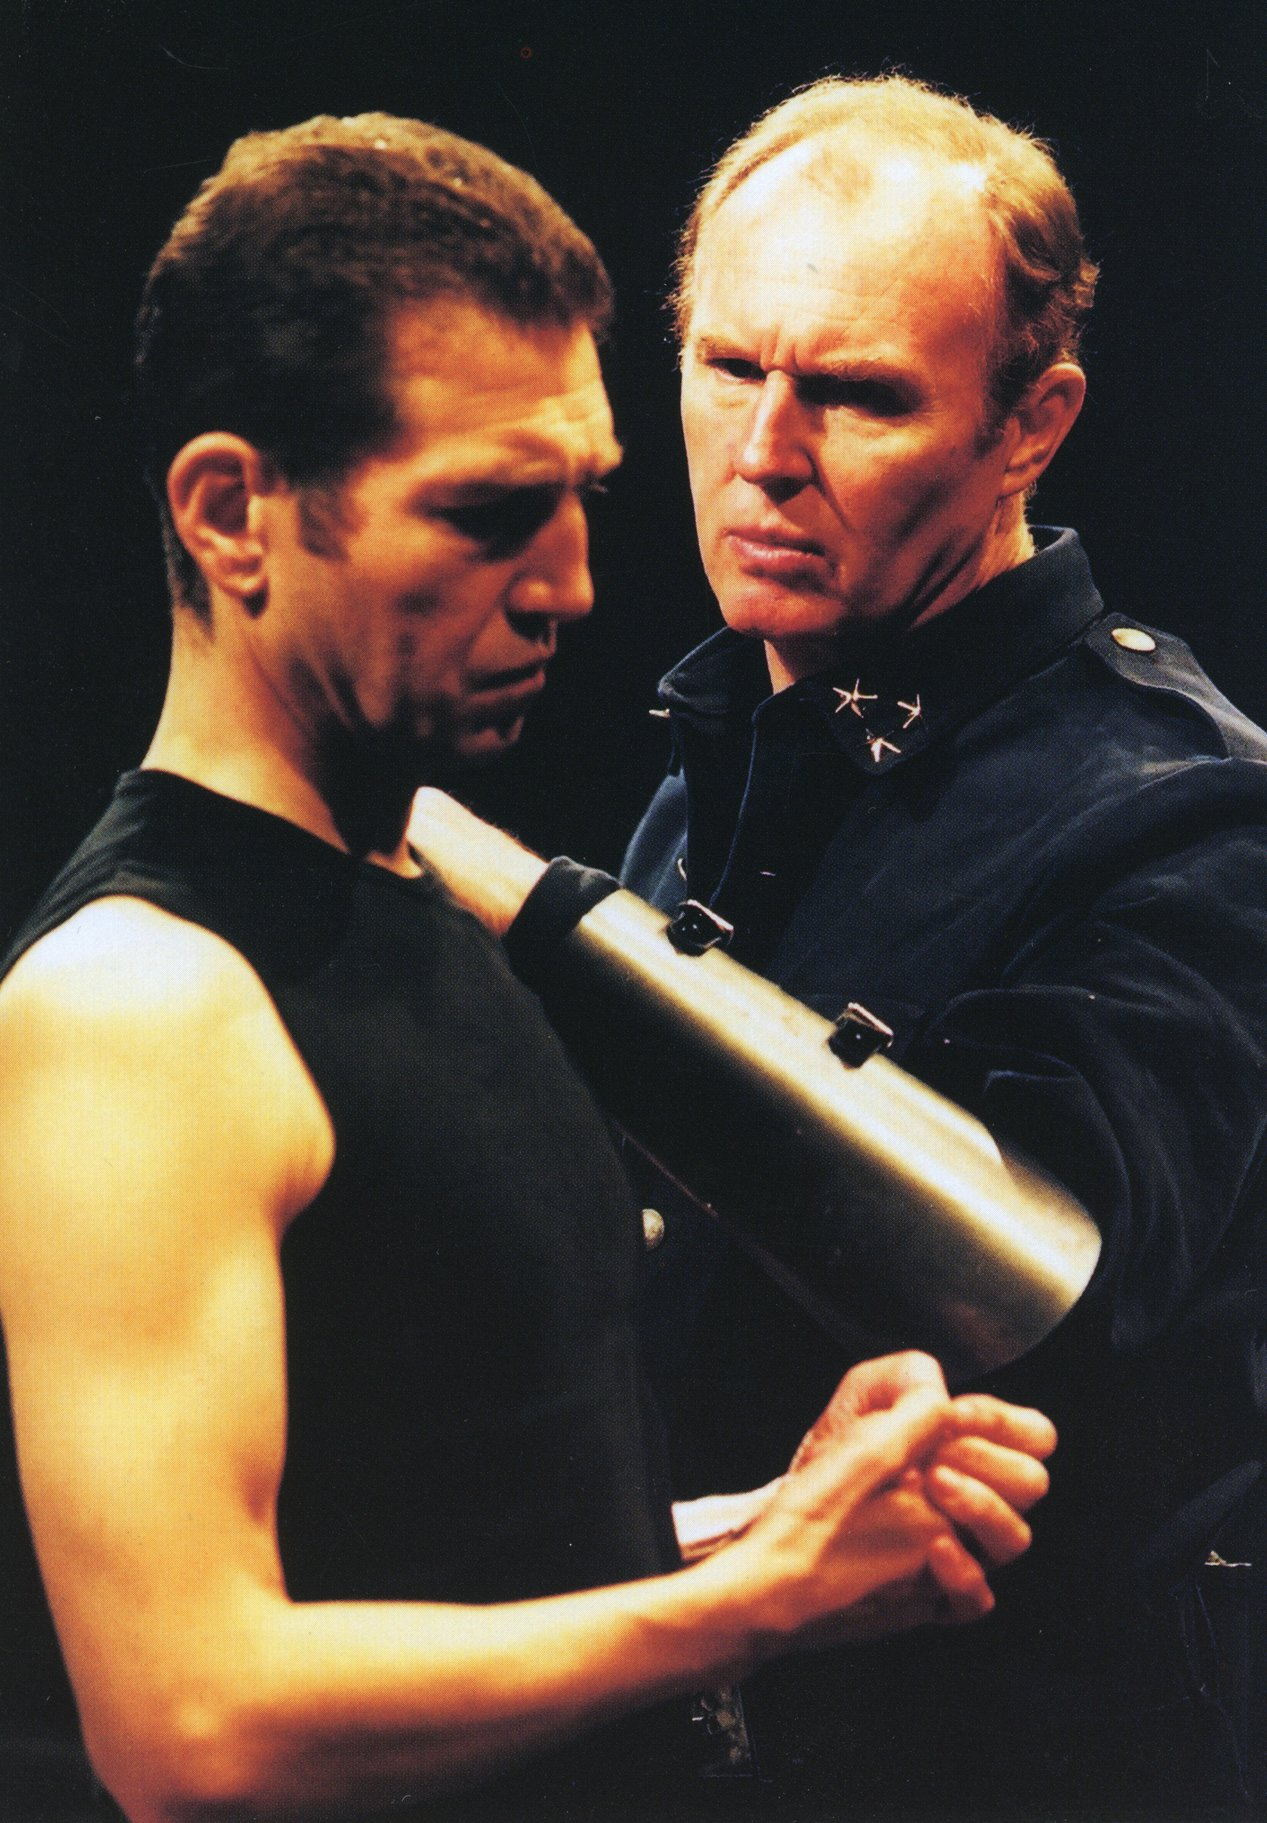 Cassius and Brutus prepare for war in the 2001 production of Julius Caesar.